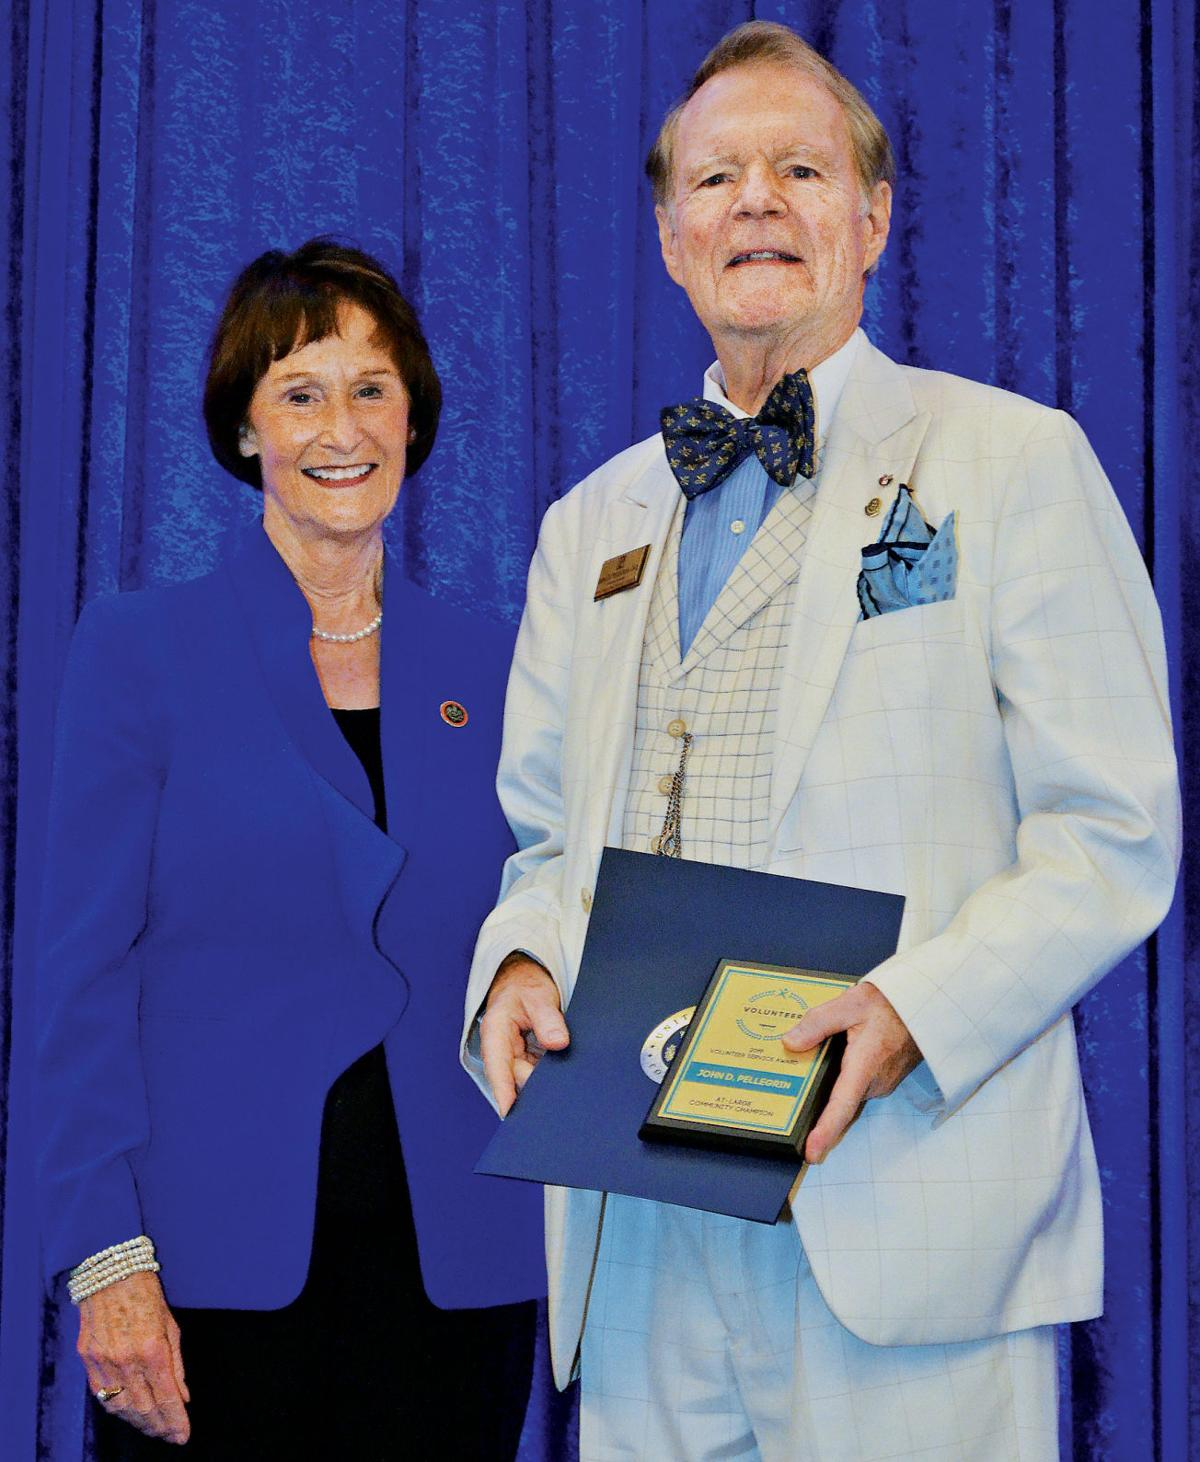 Community contributors honored at Volunteer Service Awards